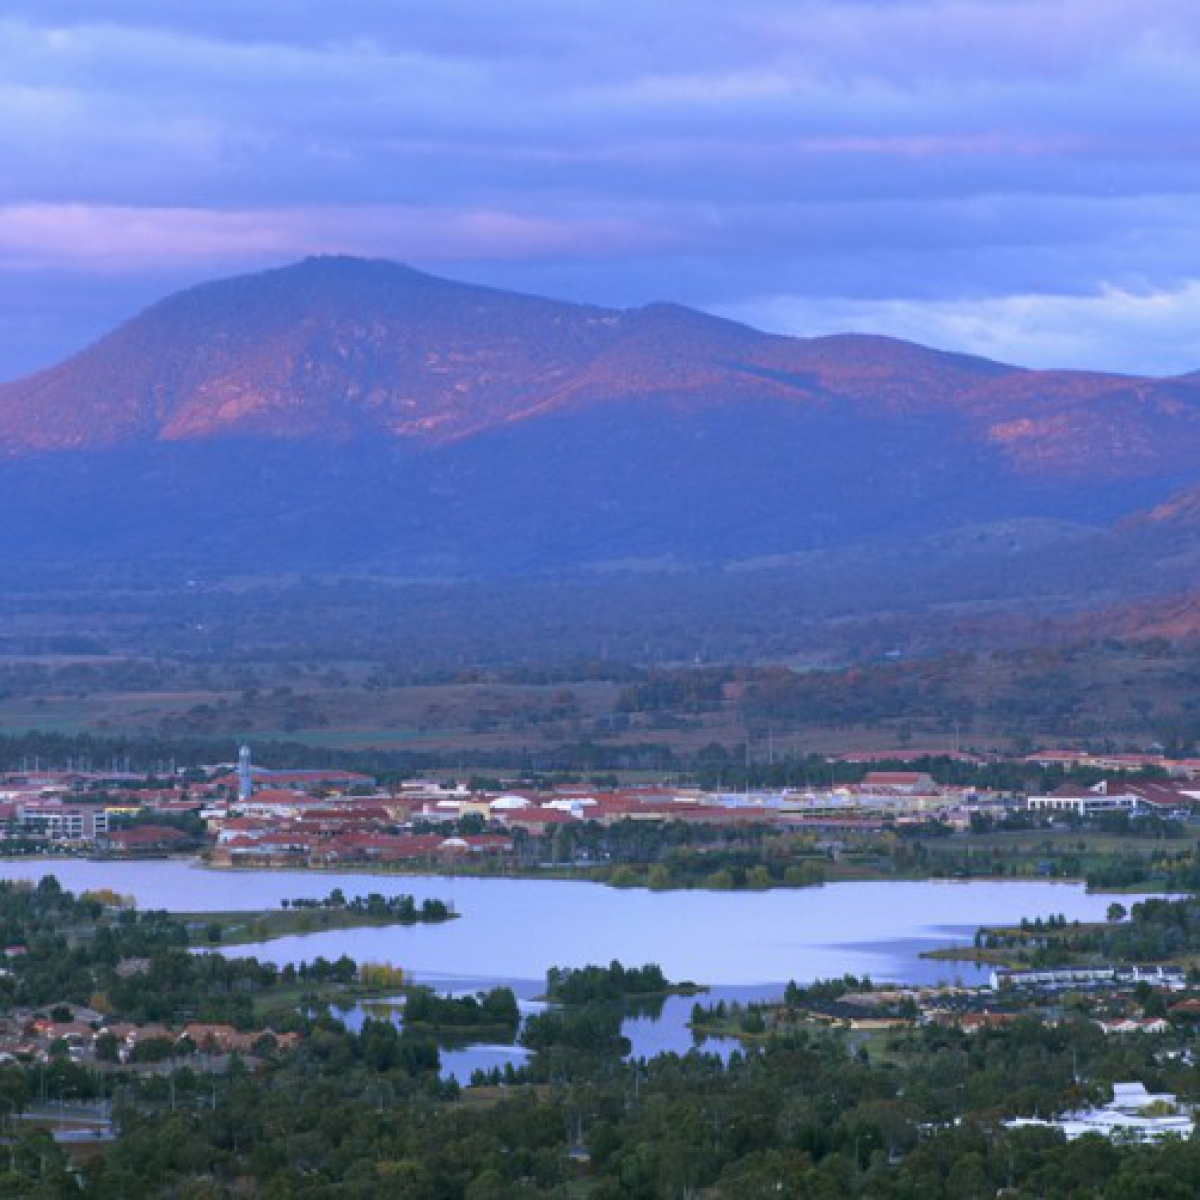 Lake Tuggeranong with Mount Tennant beyond